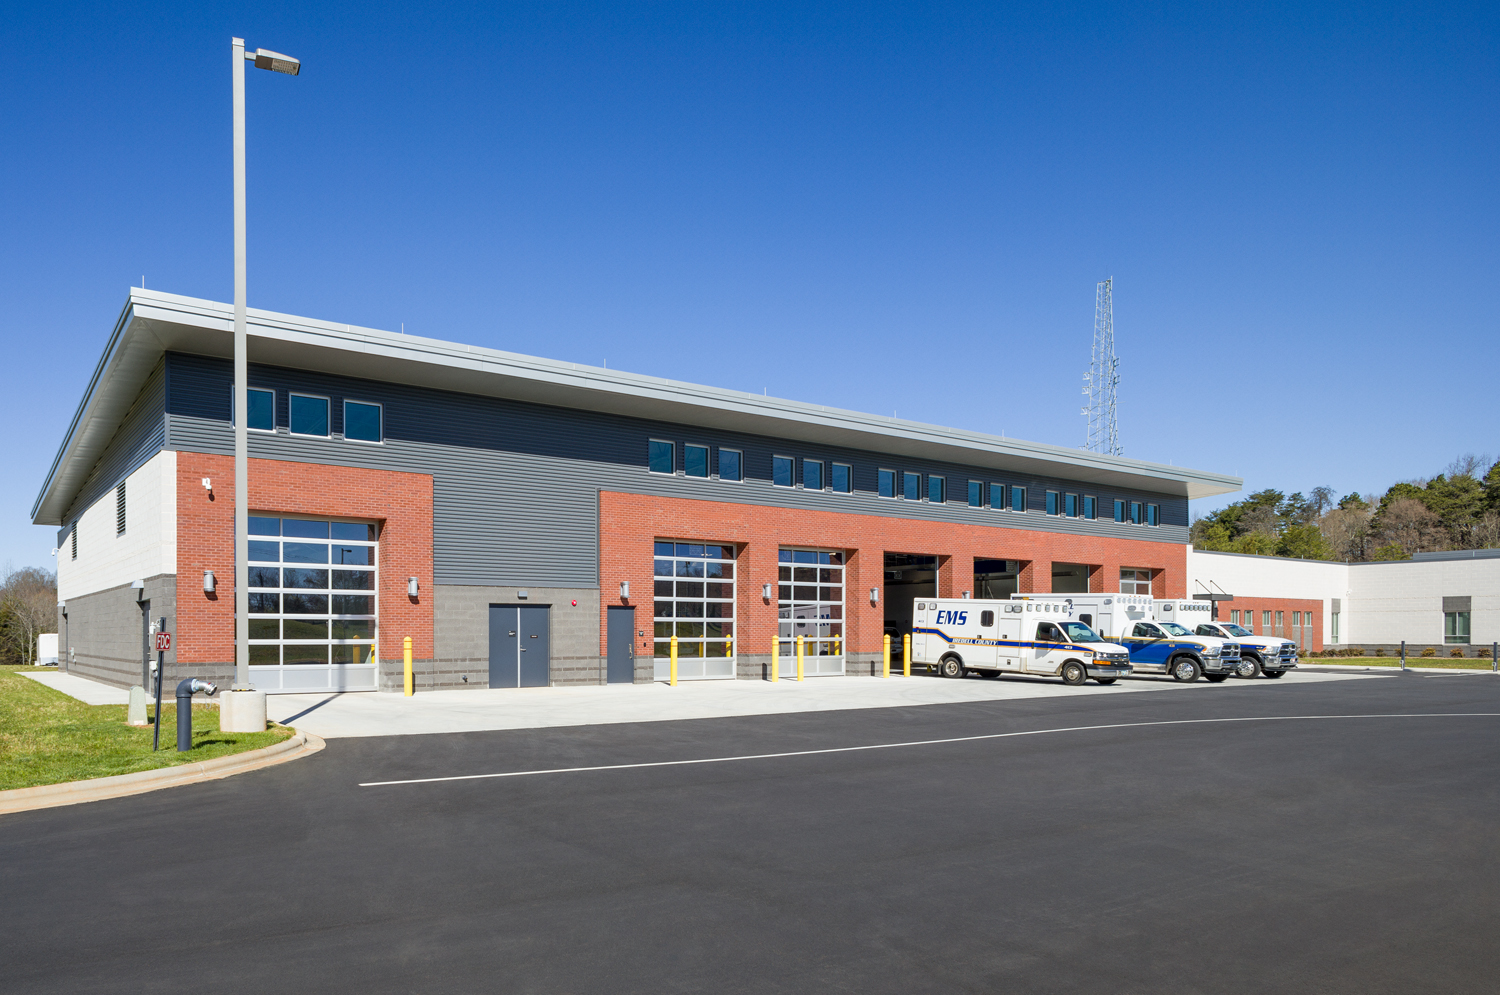 Iredell County PSC_exterior bays.jpg